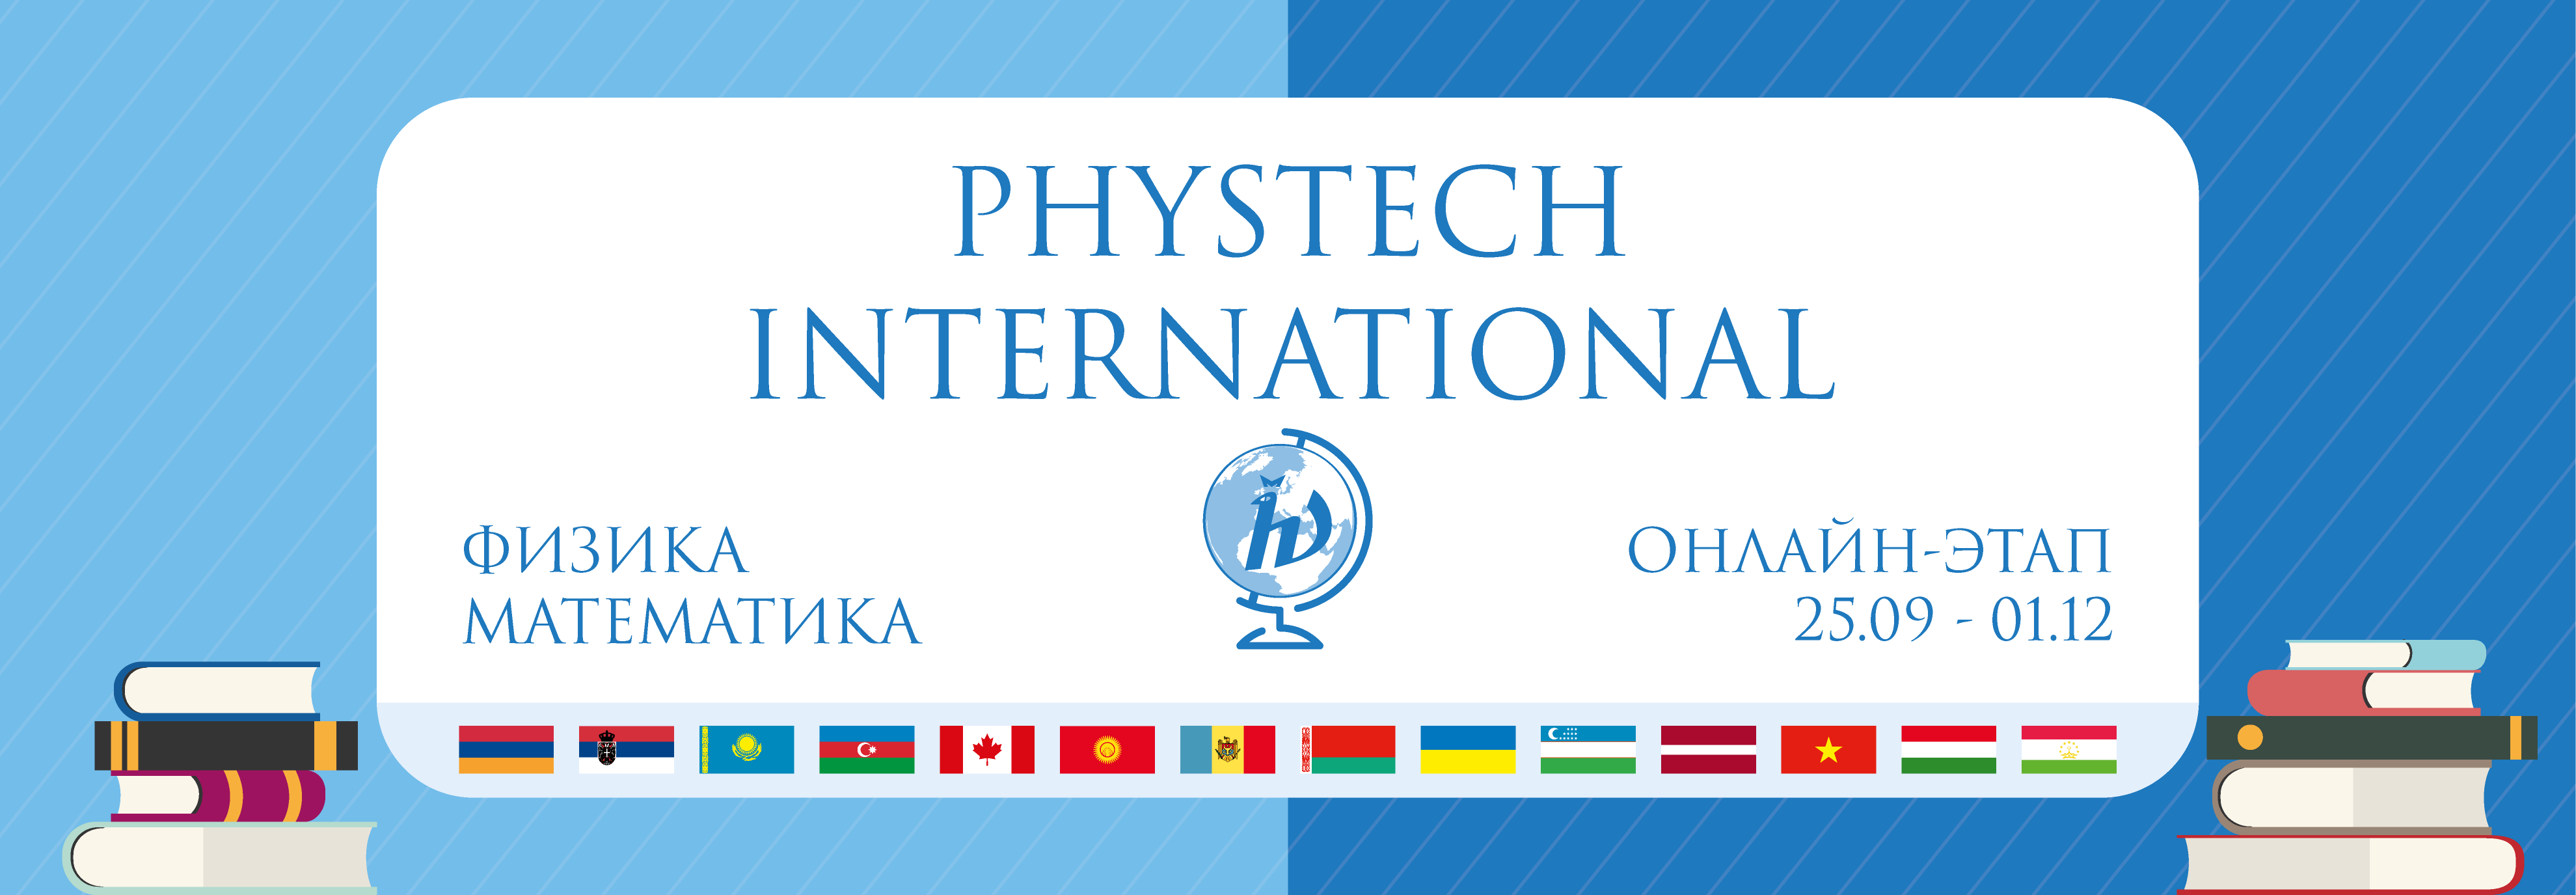 Phystech.International 2017